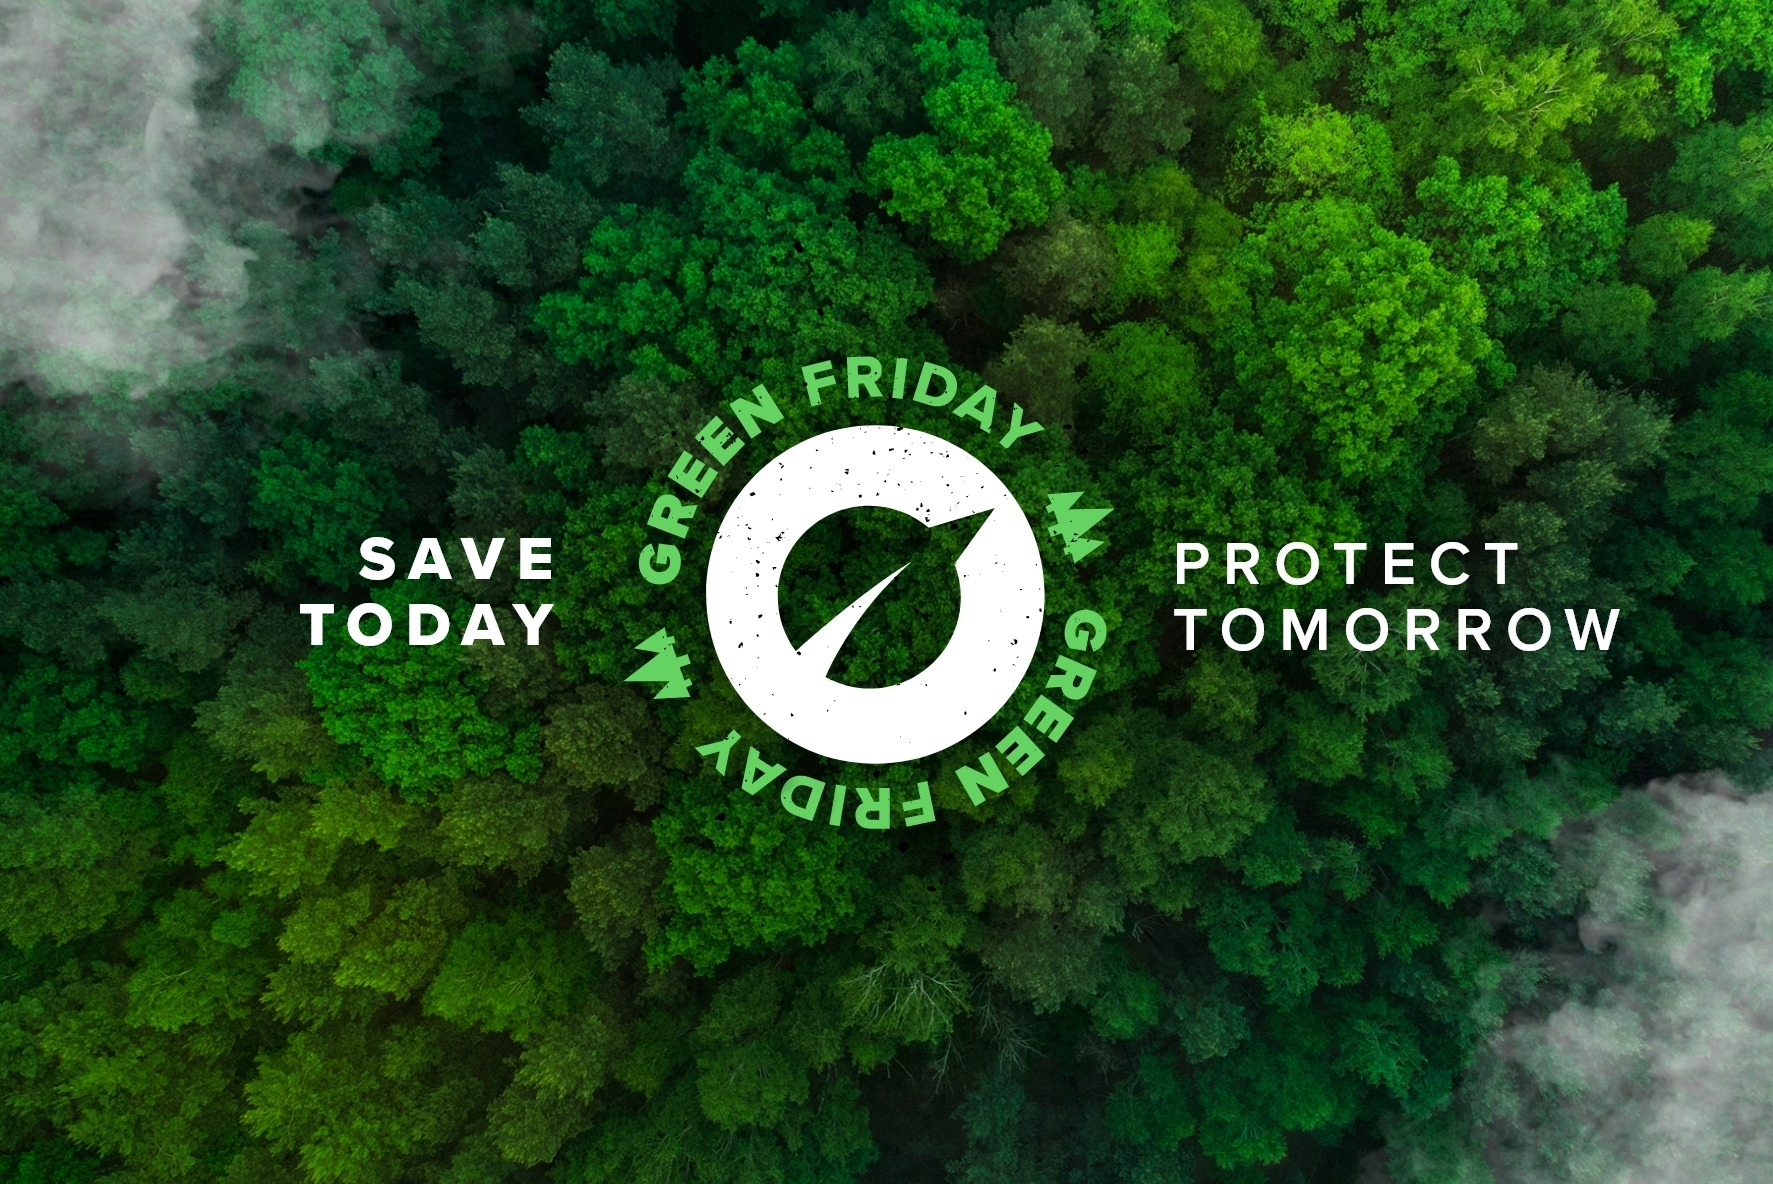 A Green Friday Deal For The Planet